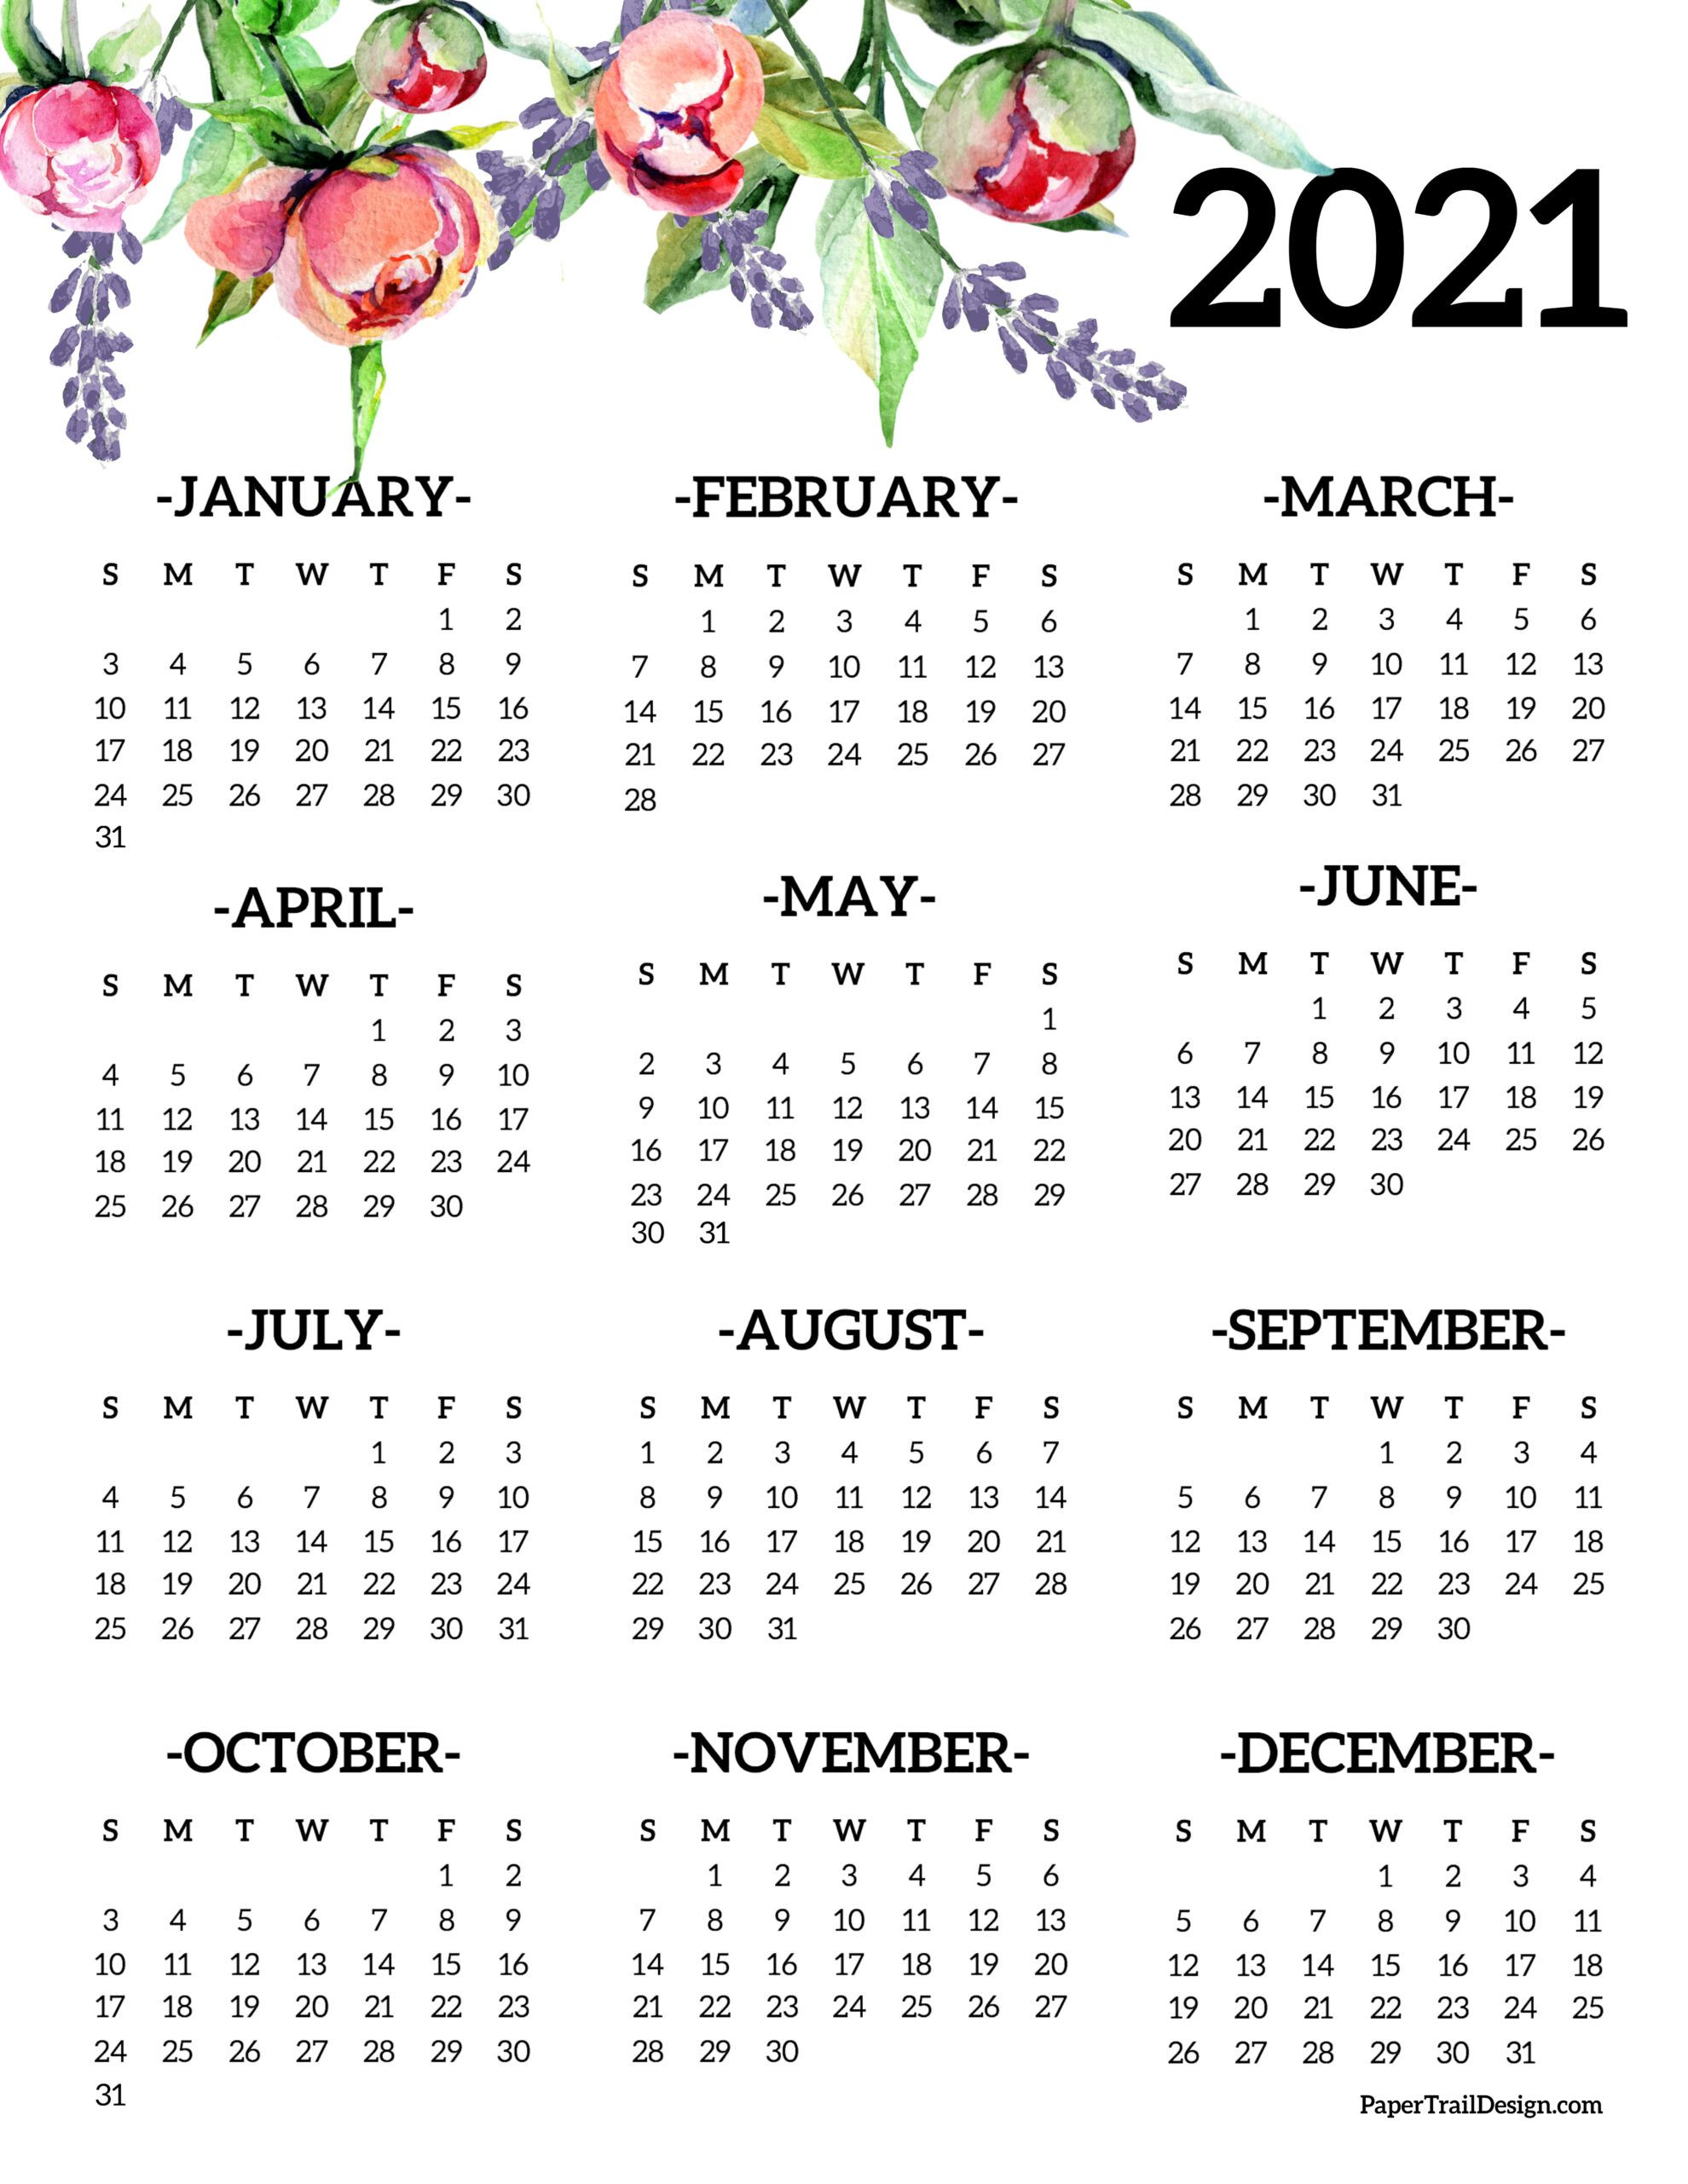 Free Printable 2021 One Page Floral Calendar Paper Trail Design In 2020 Printable Yearly Calendar Calendar Printables Print Calendar